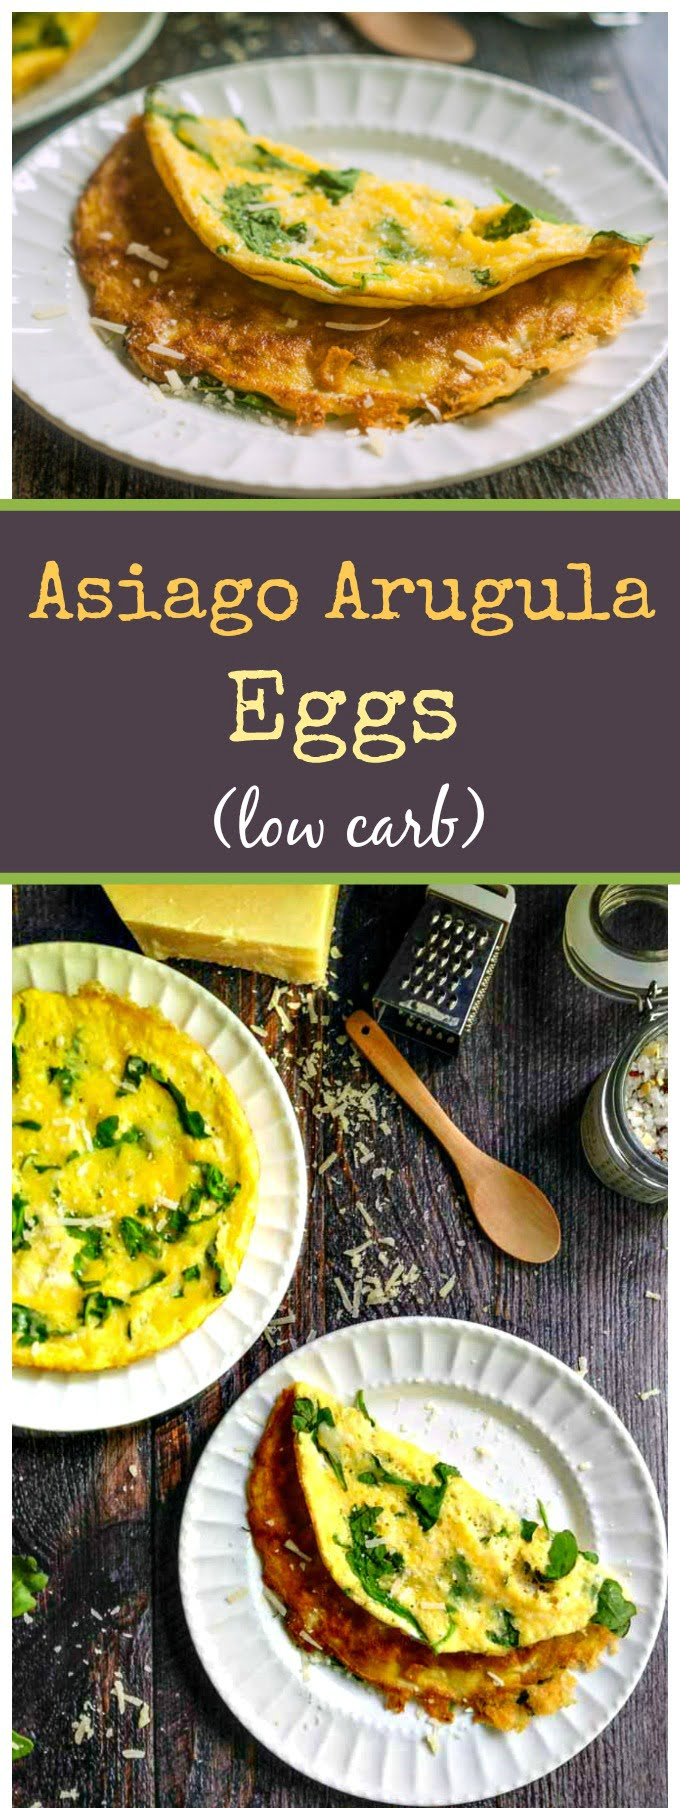 These asiago arugula eggs make for a delicious, low carb breakfast, lunch or dinner. Best of all they only take minutes to make!